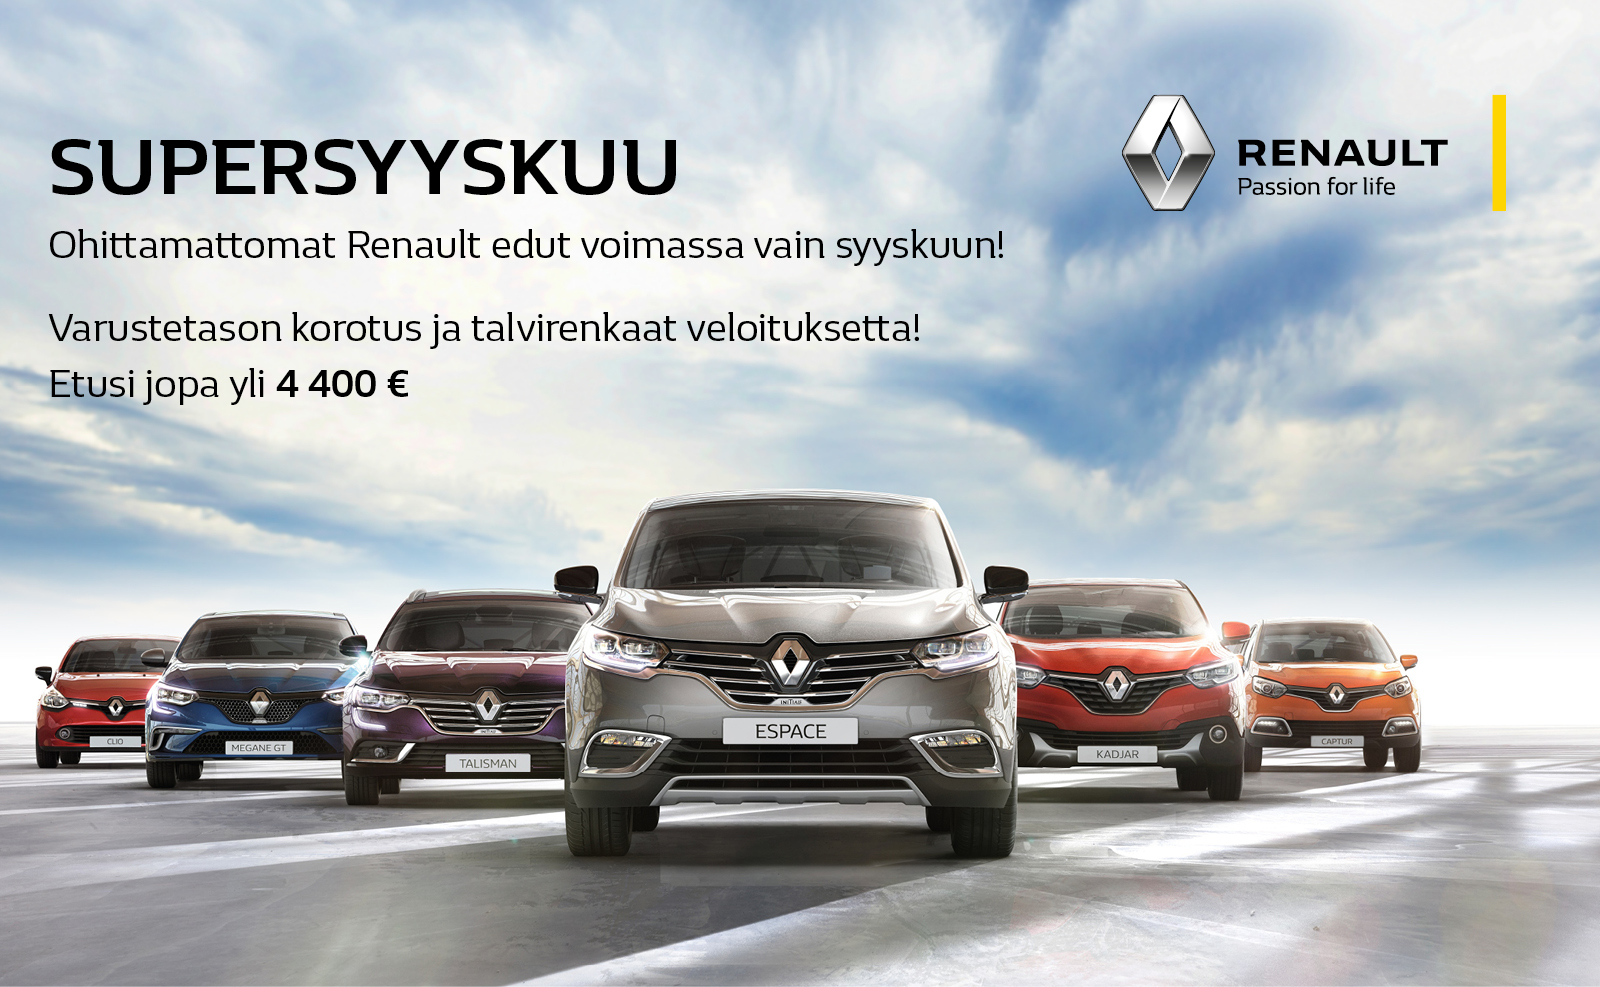 Renault Supersyyskuu